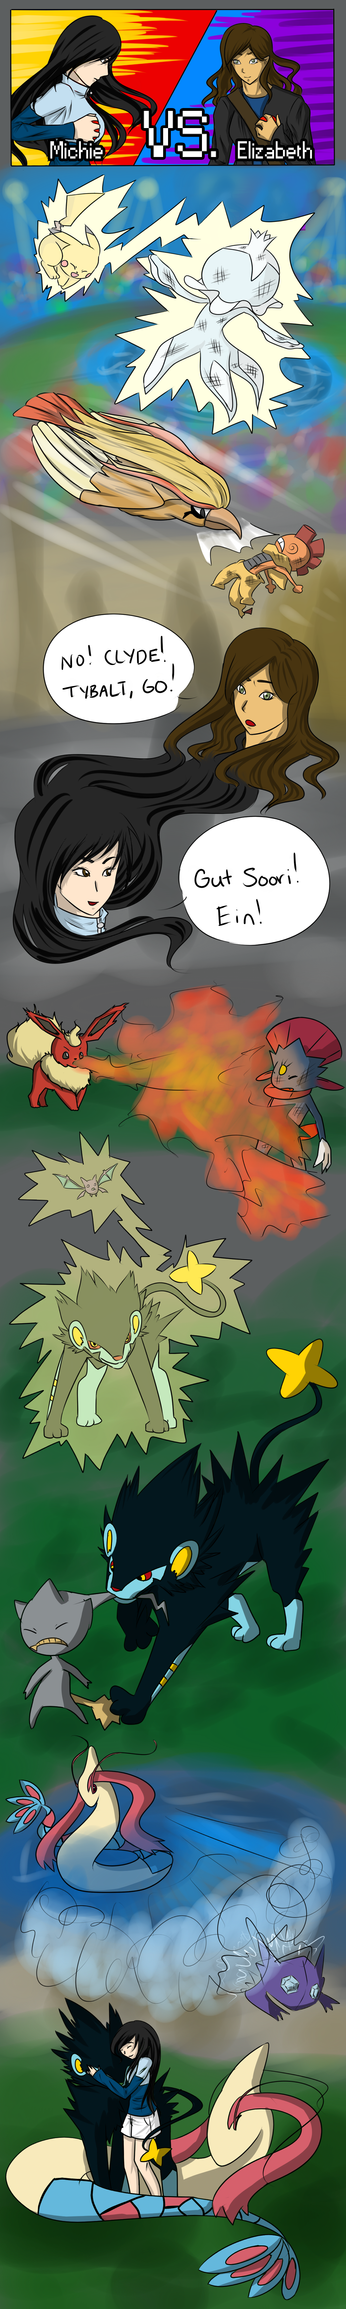 PE: First Battle! by Unreturned